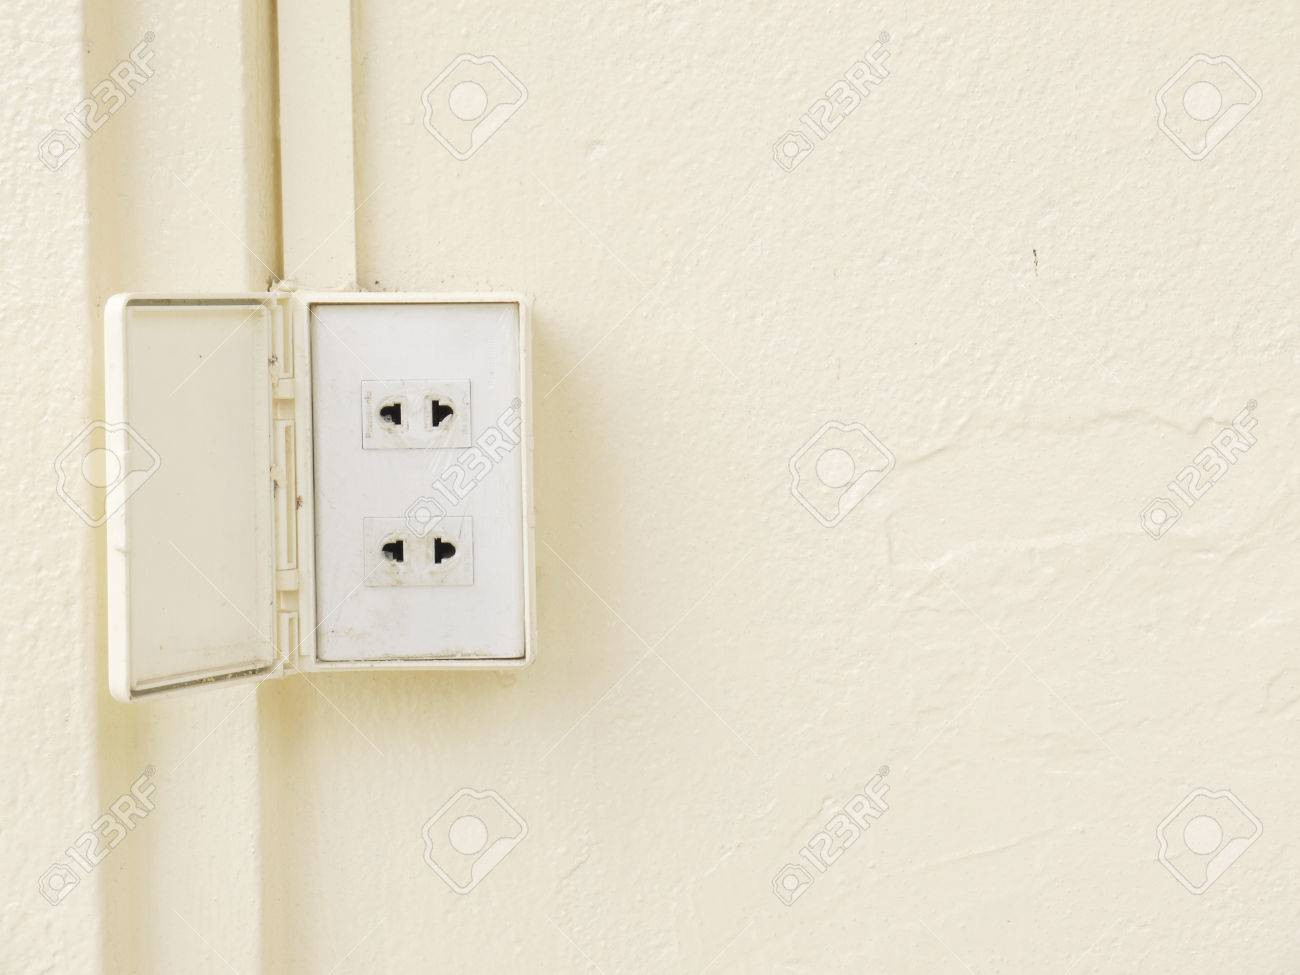 Magnificent Household Electrical Ornament - Best Images for wiring ...